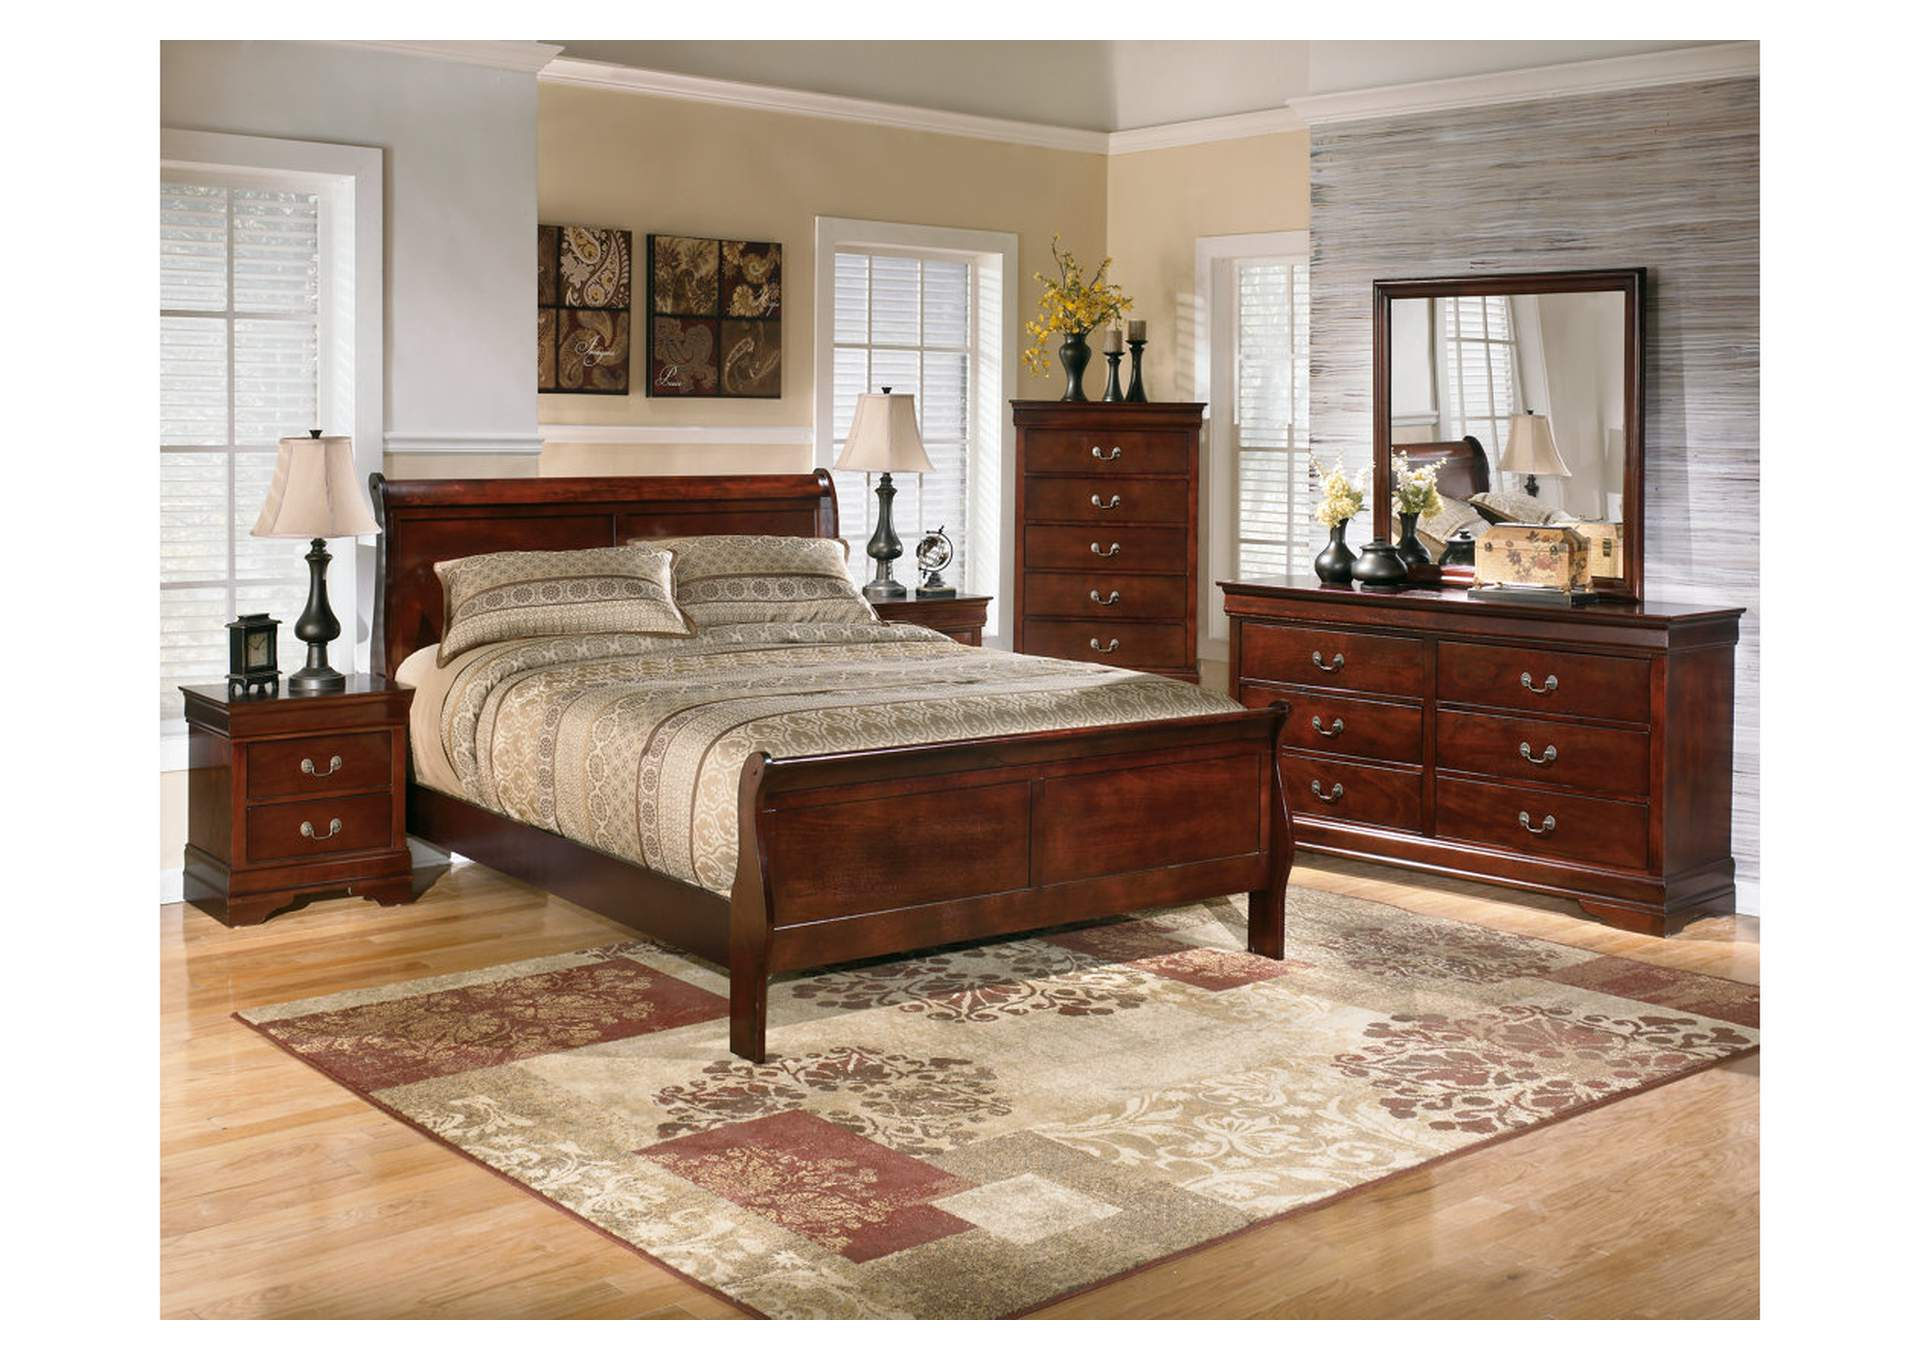 Alisdair King Sleigh Bed w/Dresser, Mirror & Drawer Chest,Signature Design By Ashley